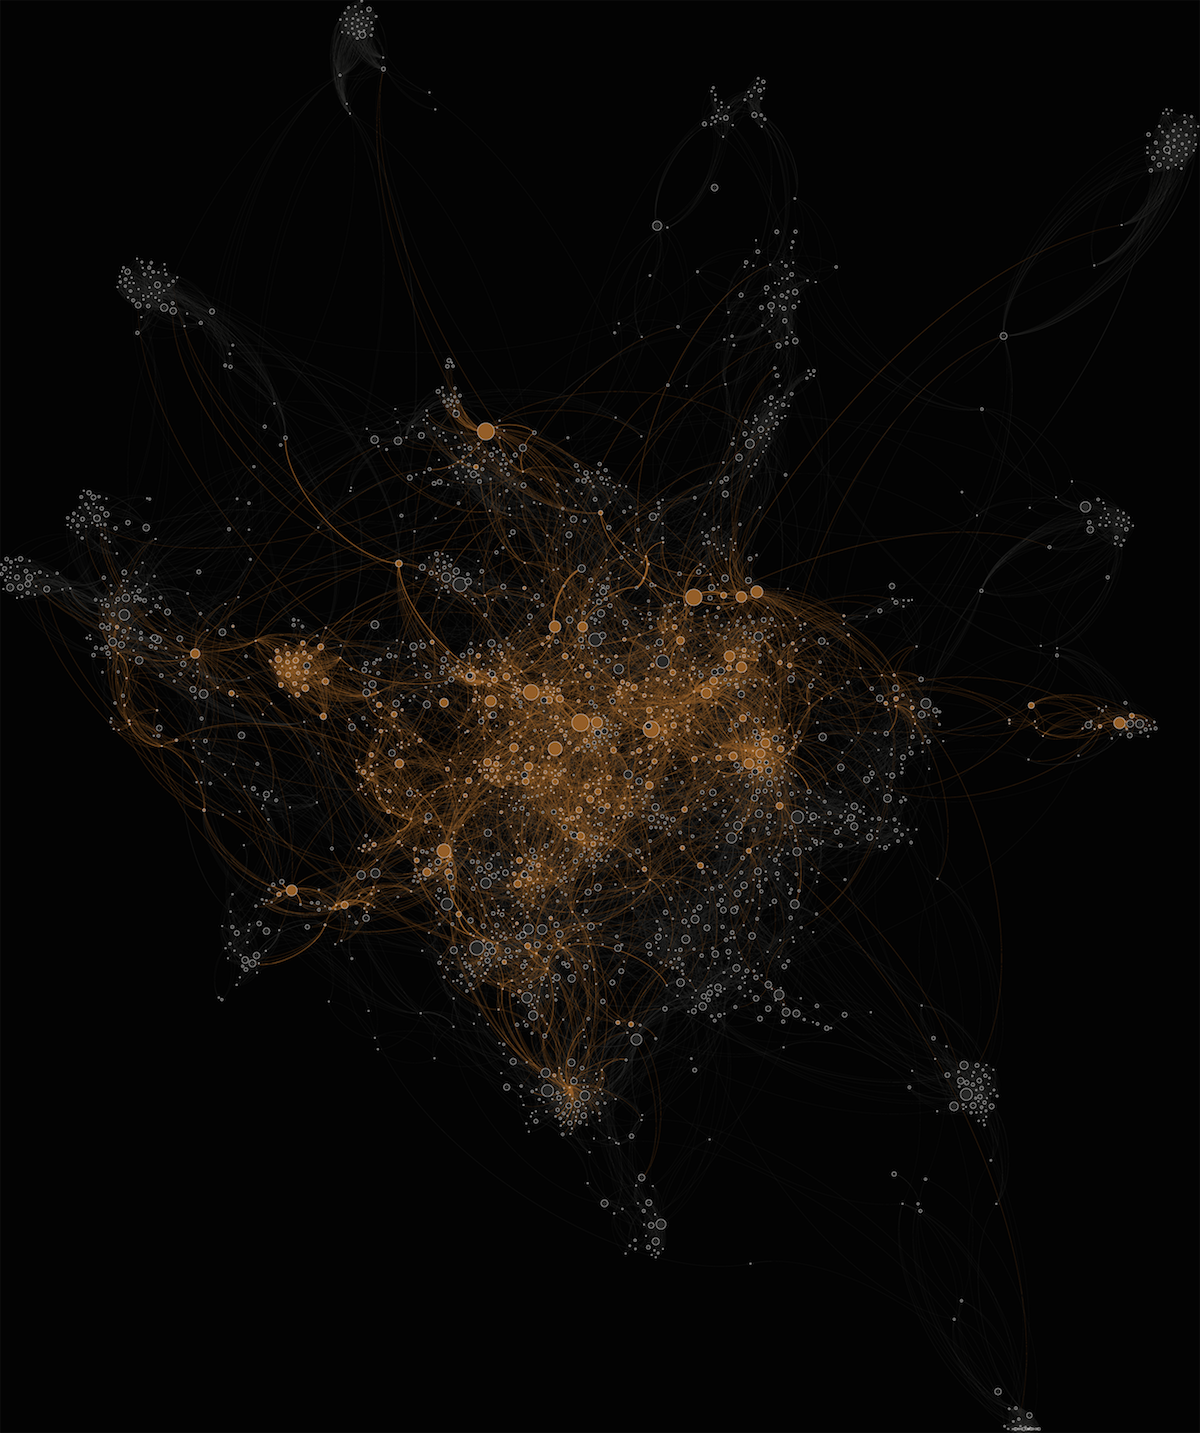 Big Citation Network SNA